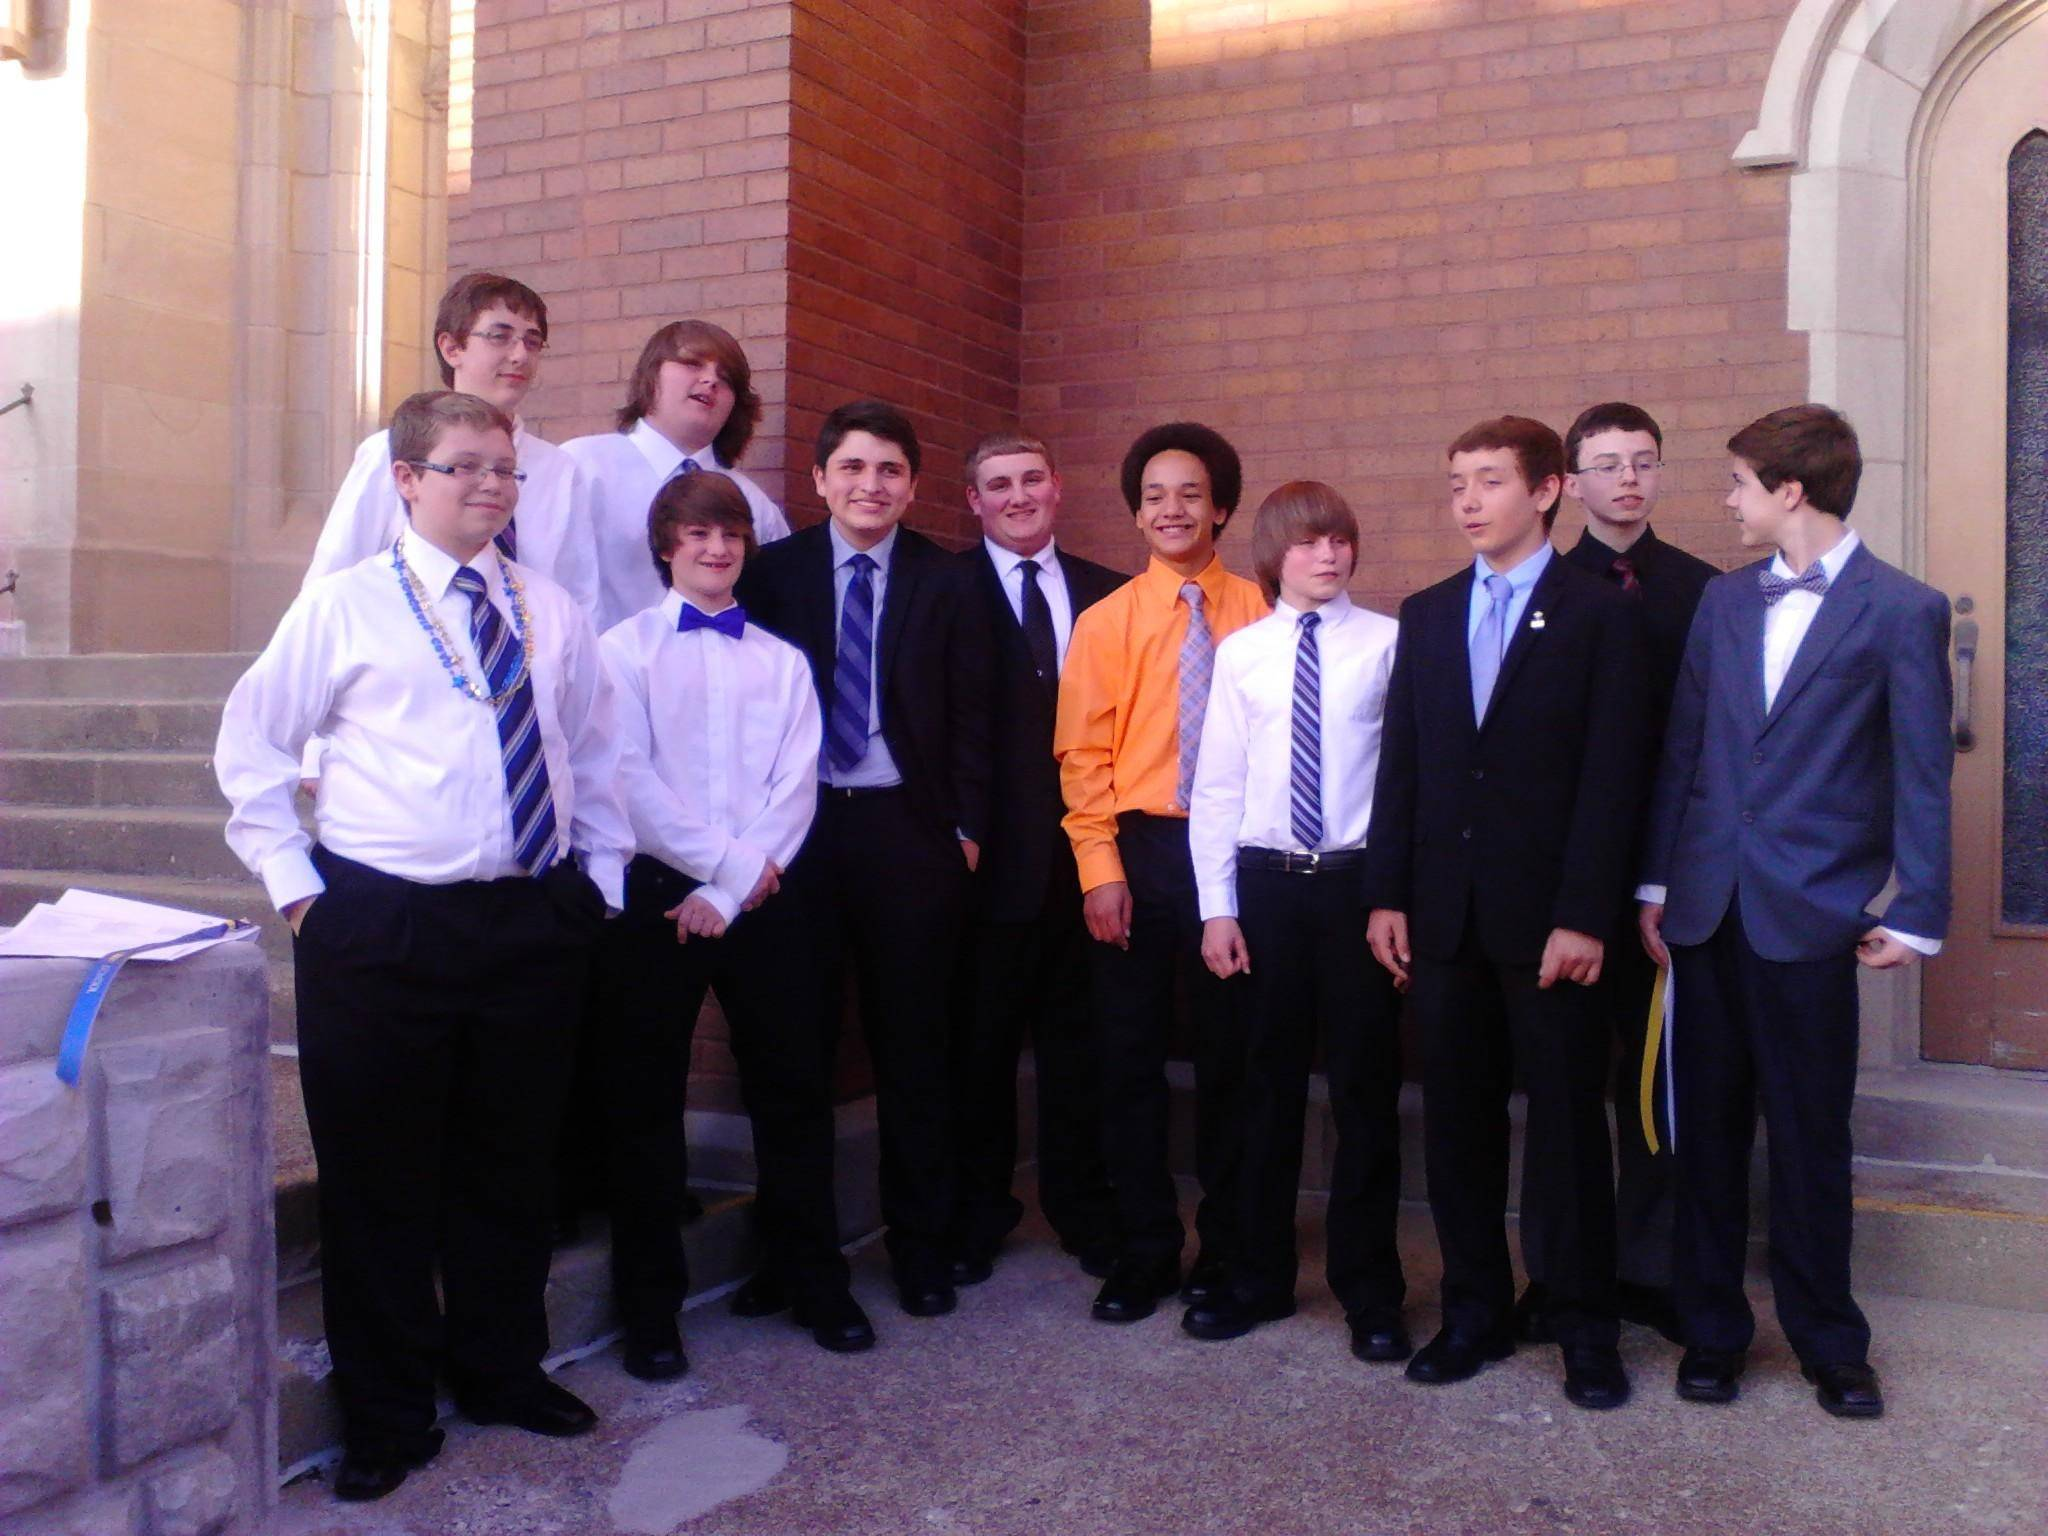 Eighth-grade graduates from St. John Lutheran School in Elgin include: front row, from left, Cory Hall, Ayden Ideran, William Wehrwein, Phillip Welch, Jonathan Franco, Eric Brands, Jake Lesh, Dietrich Versaw, Toby Little; and back row, Austin Kimsey and Chas Migut.